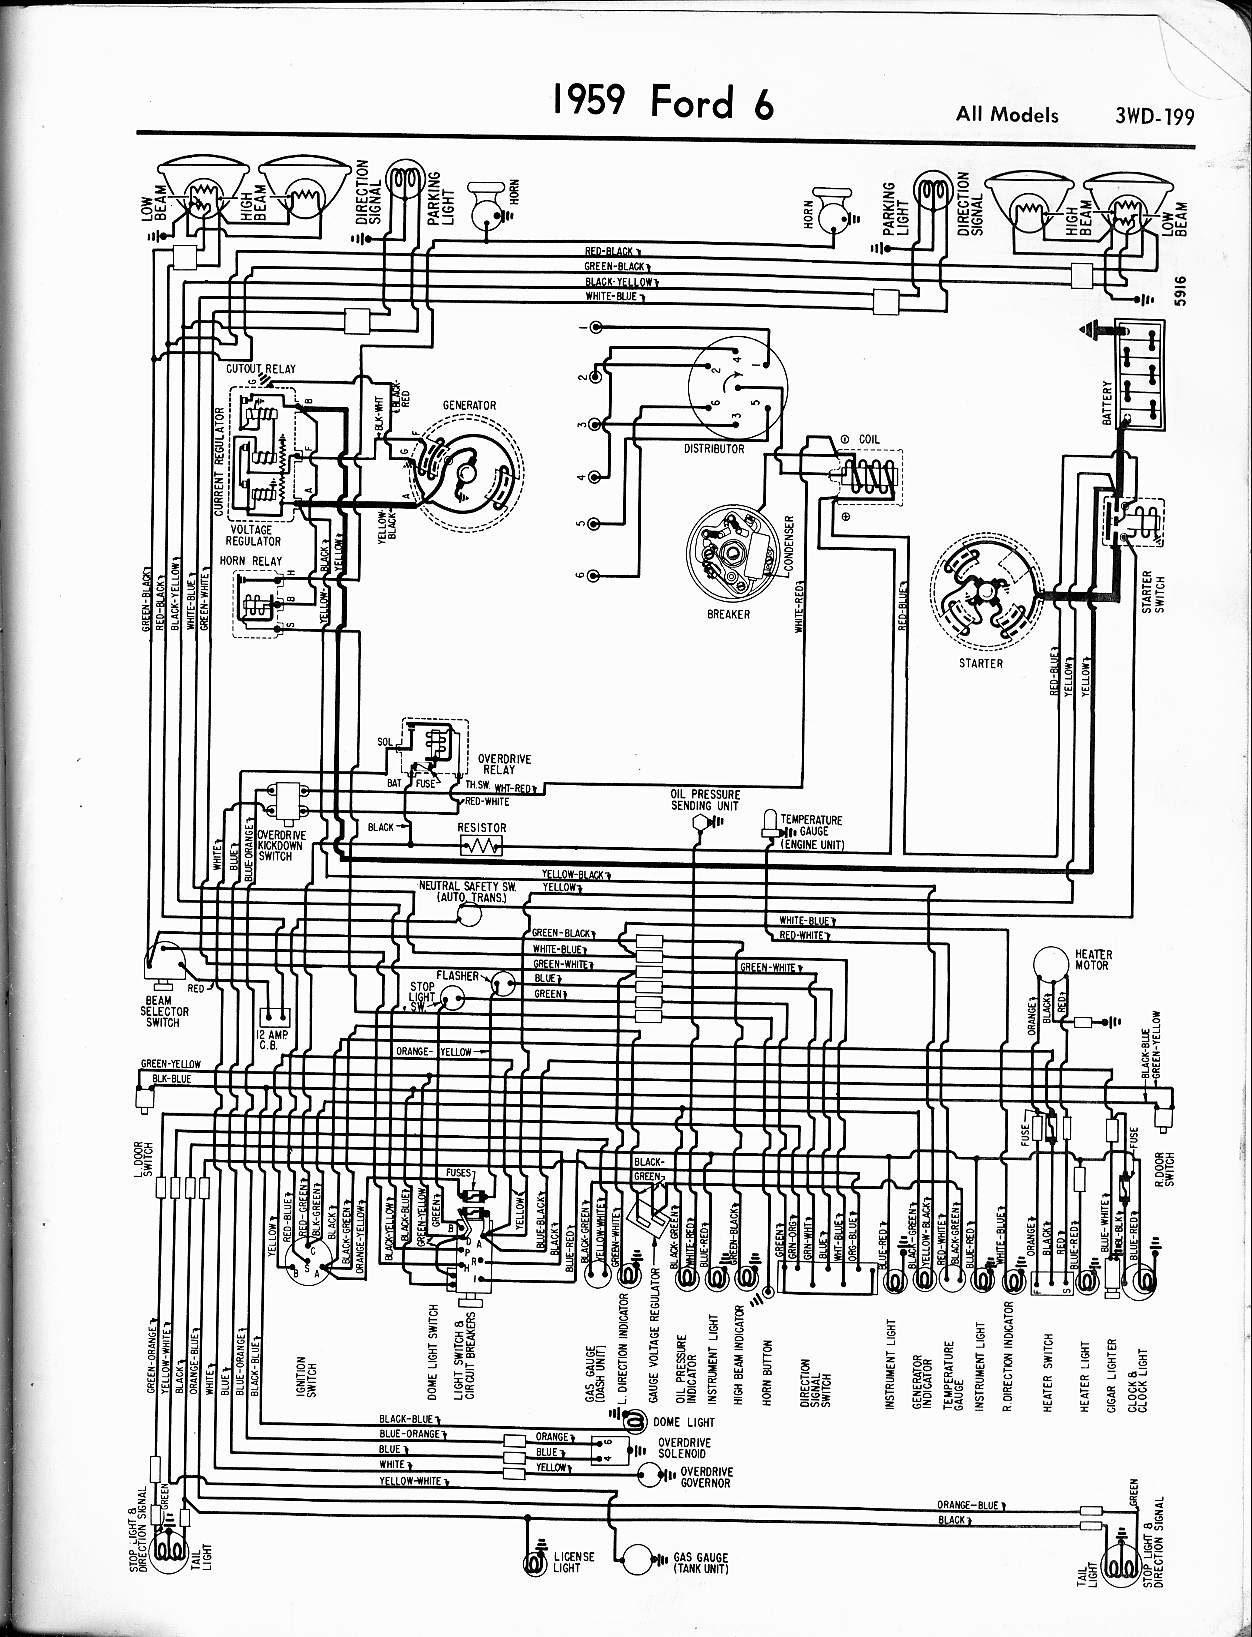 Wiring Diagram For Ford F 250 Power Window Switch